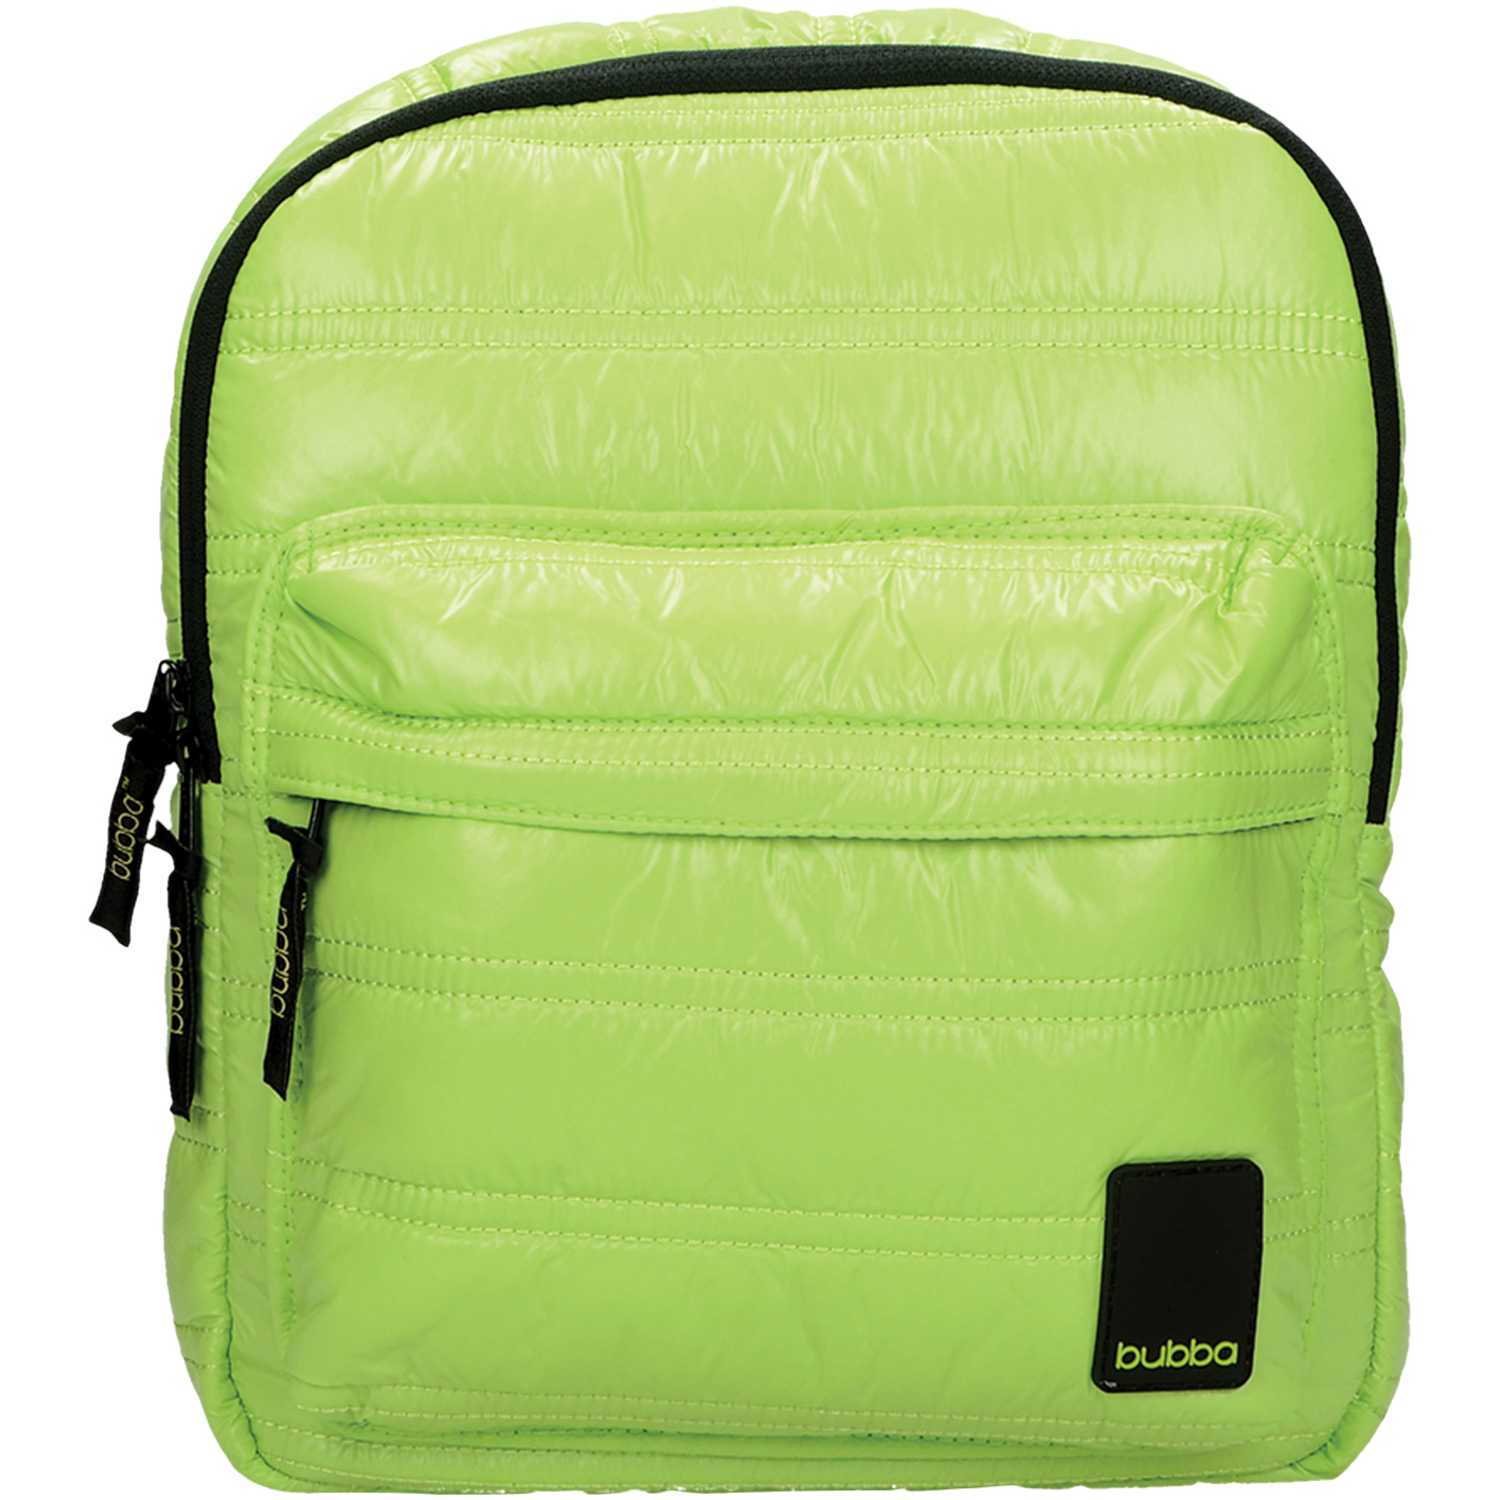 BUBBA Mochila Bubba Classic Mini Verde Mochilas multipropósitos